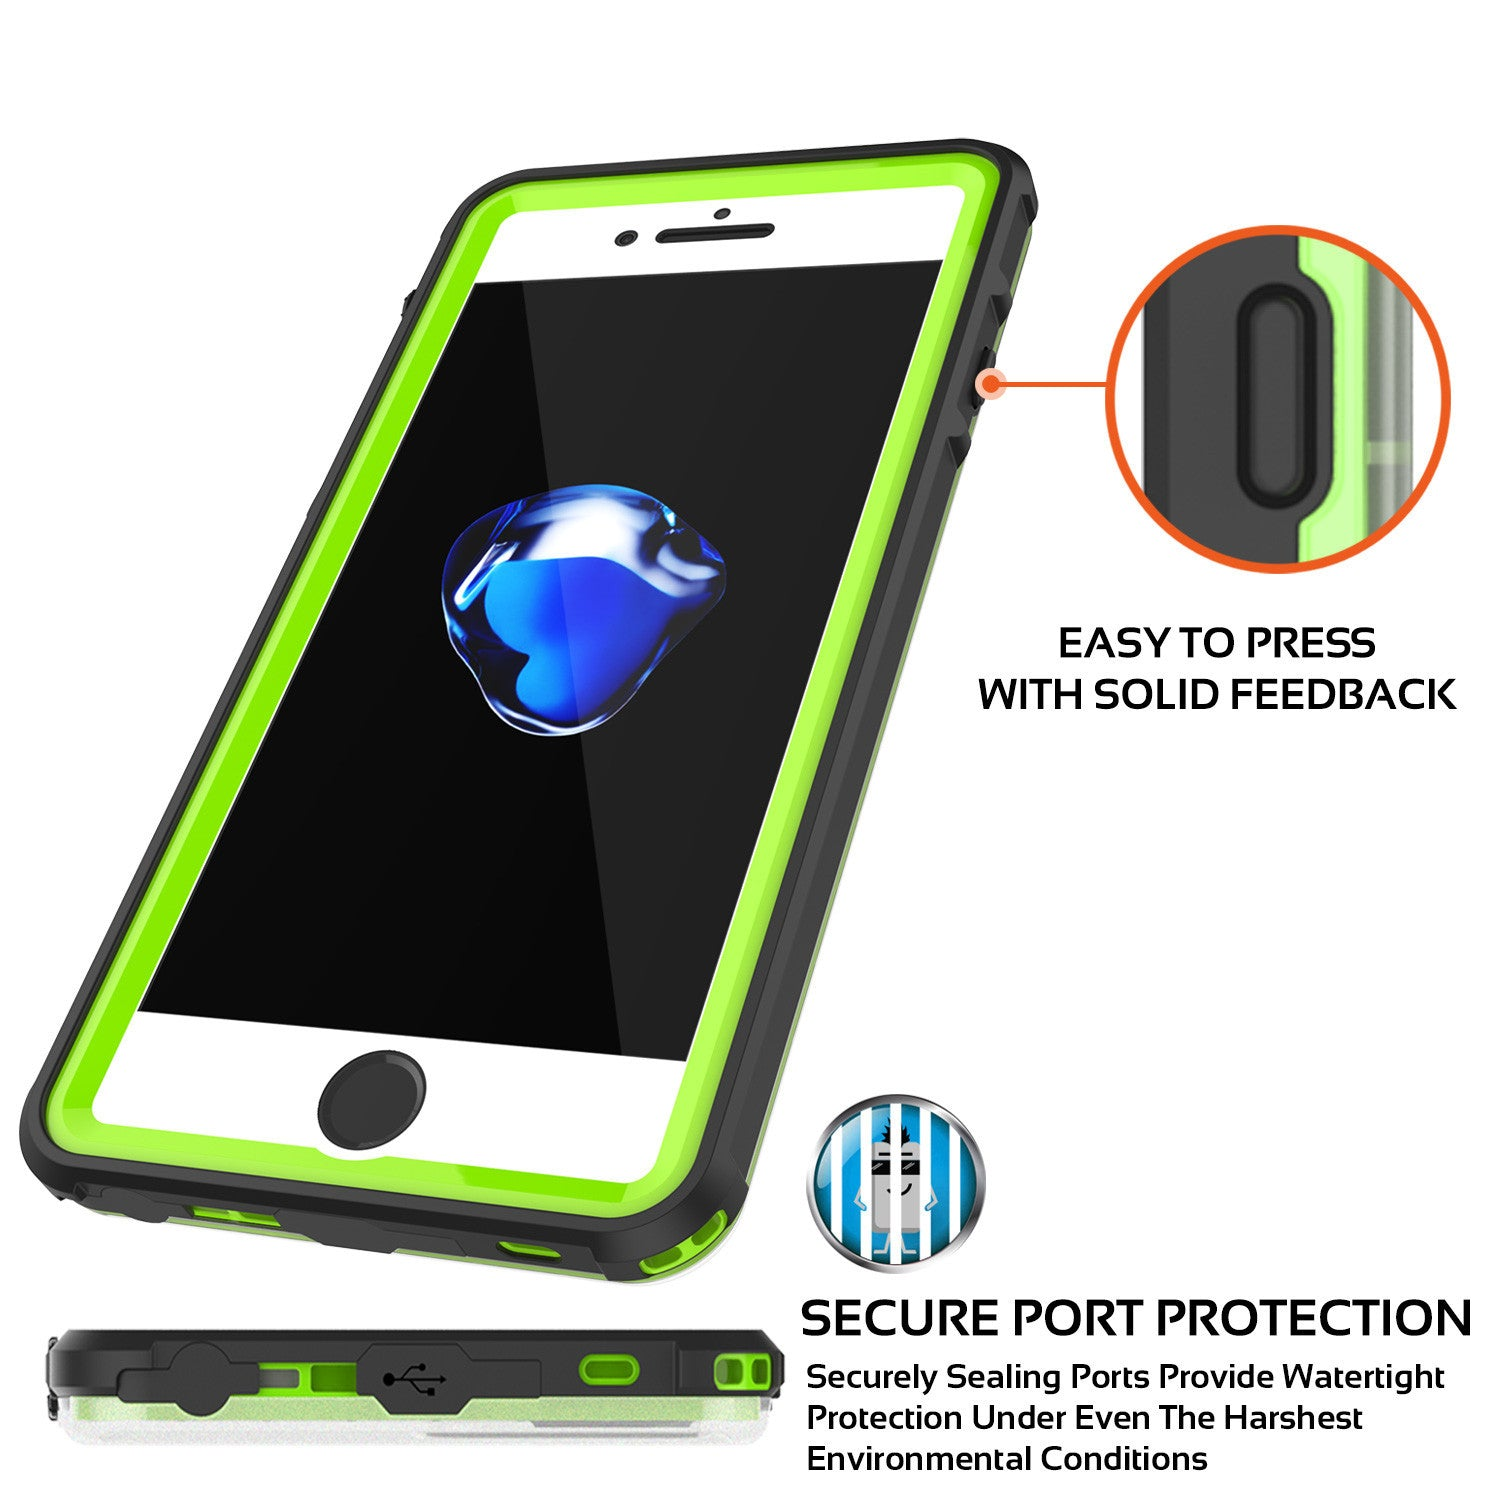 iPhone 7+ Plus Waterproof Case, PUNKcase CRYSTAL Light Green  W/ Attached Screen Protector  | Warranty